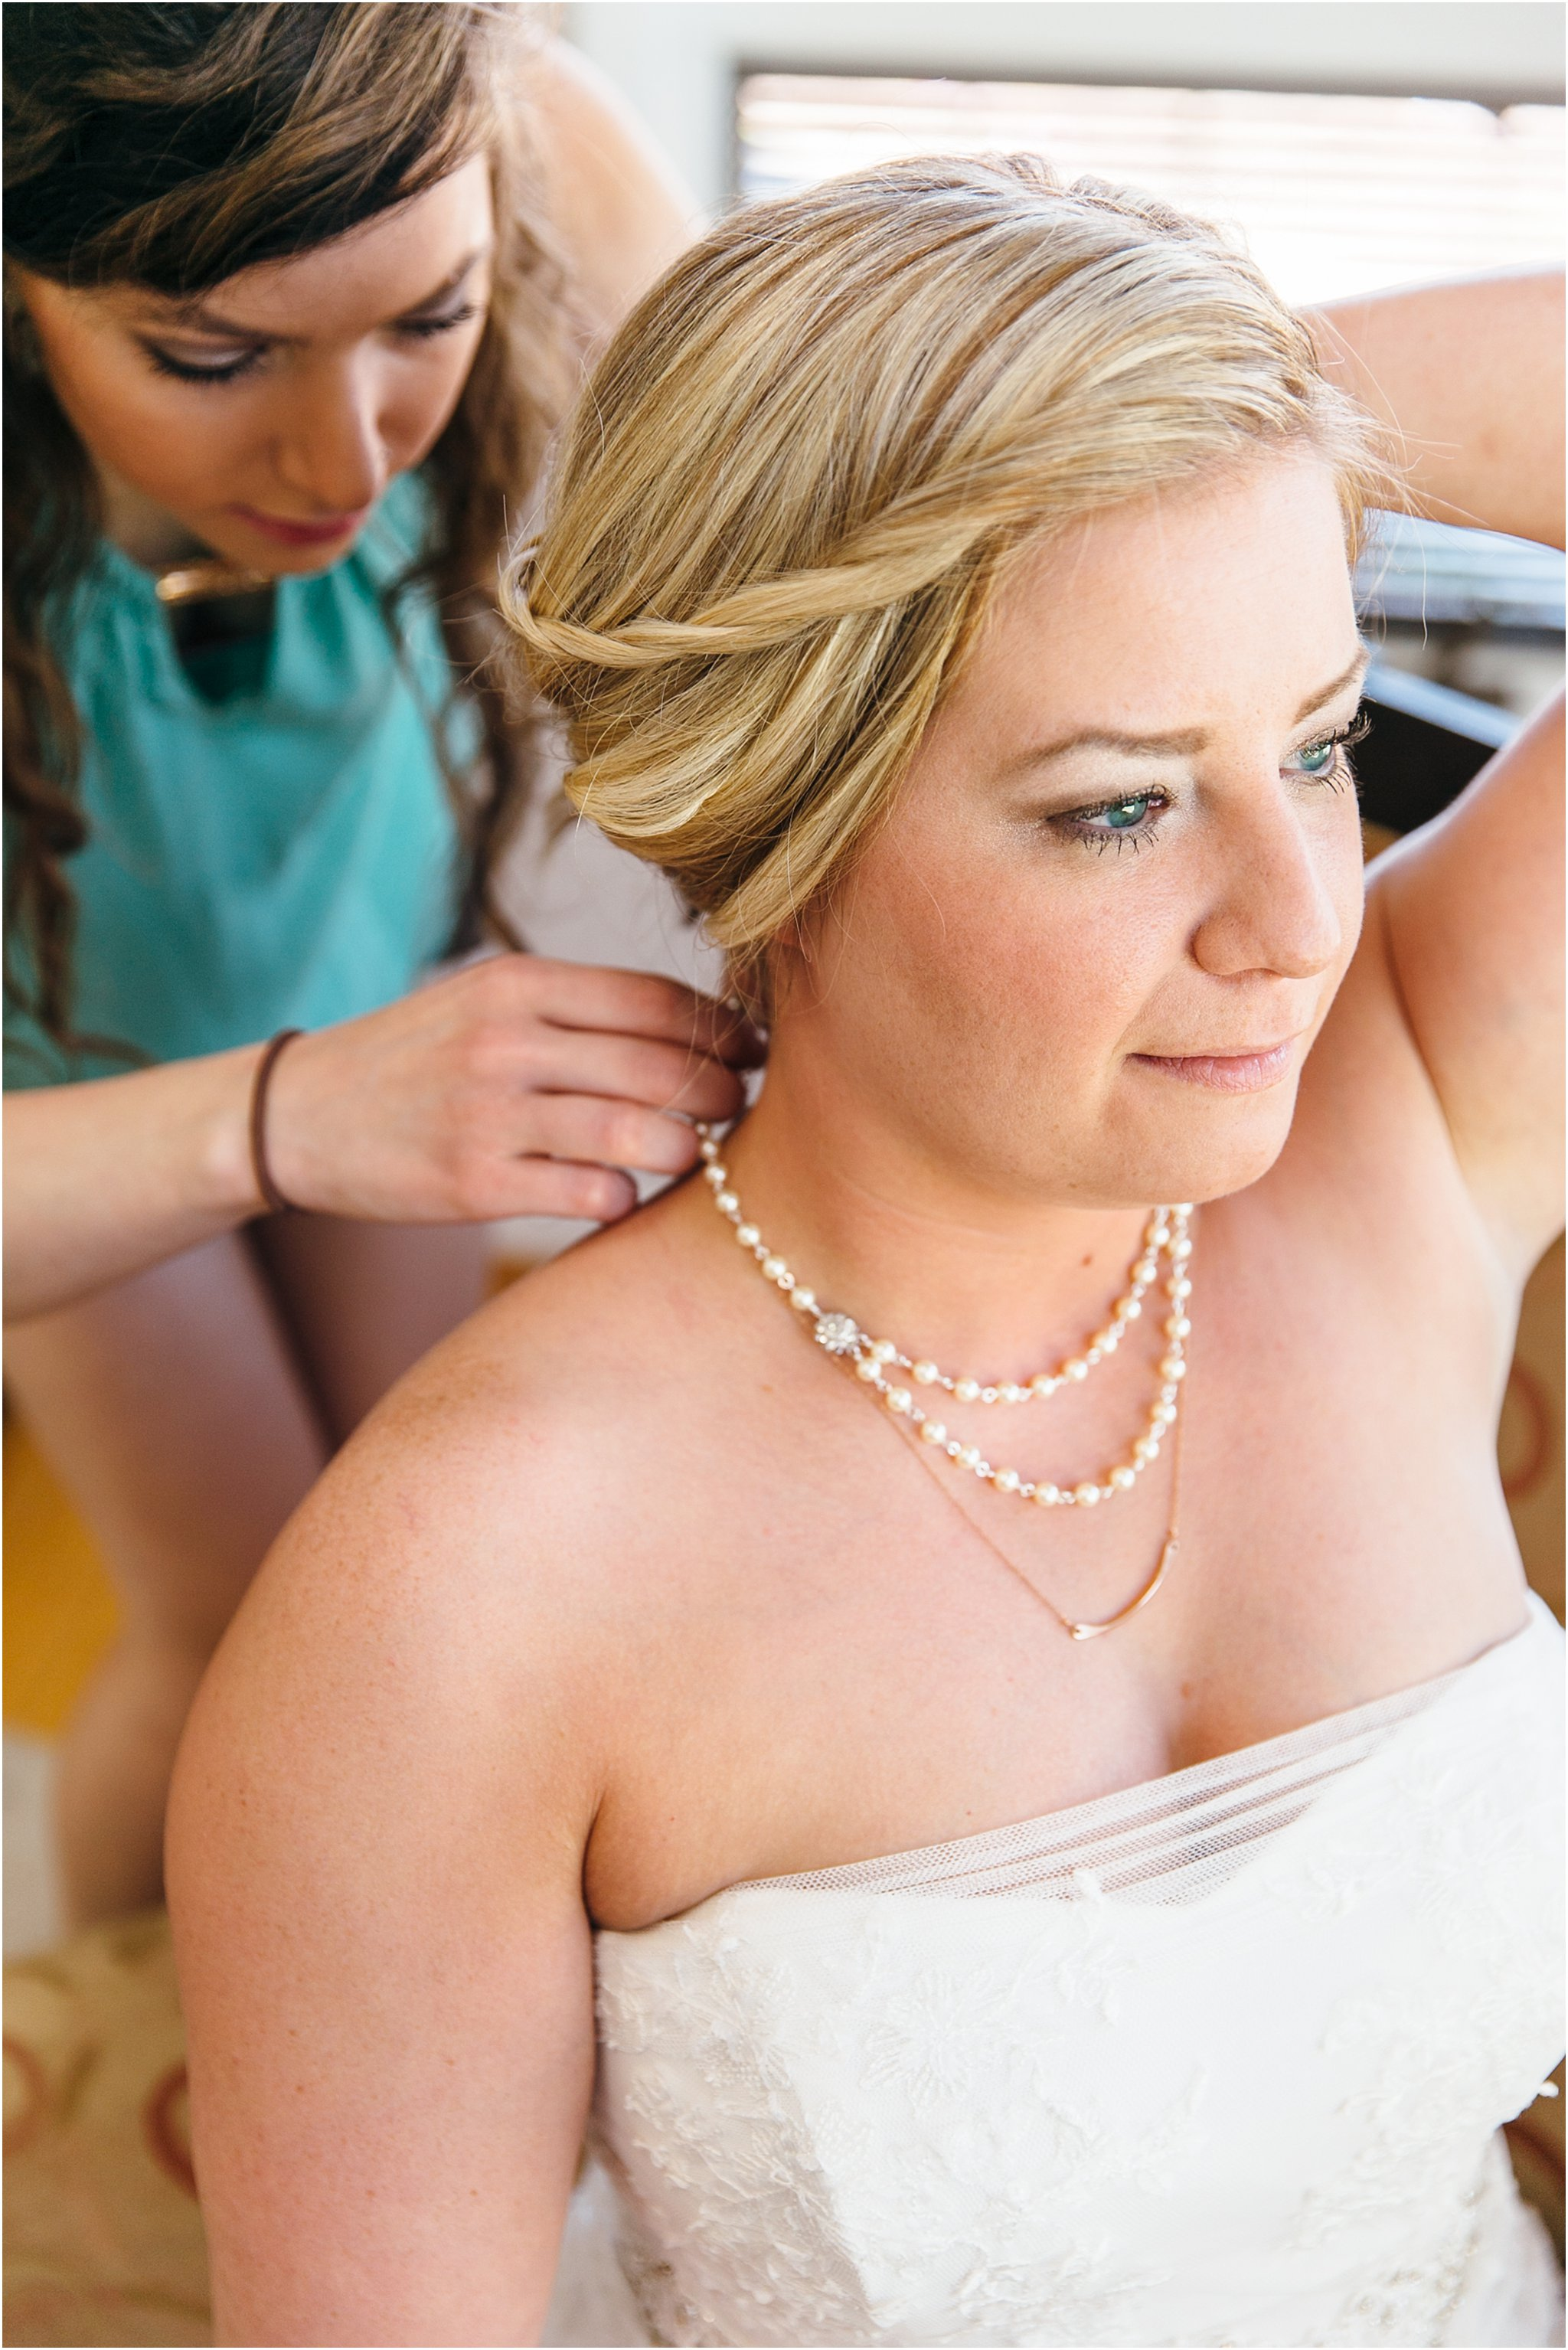 jessica_ryan_photography_redwingpark_wedding_virginia_beach_hampton_roads_1227